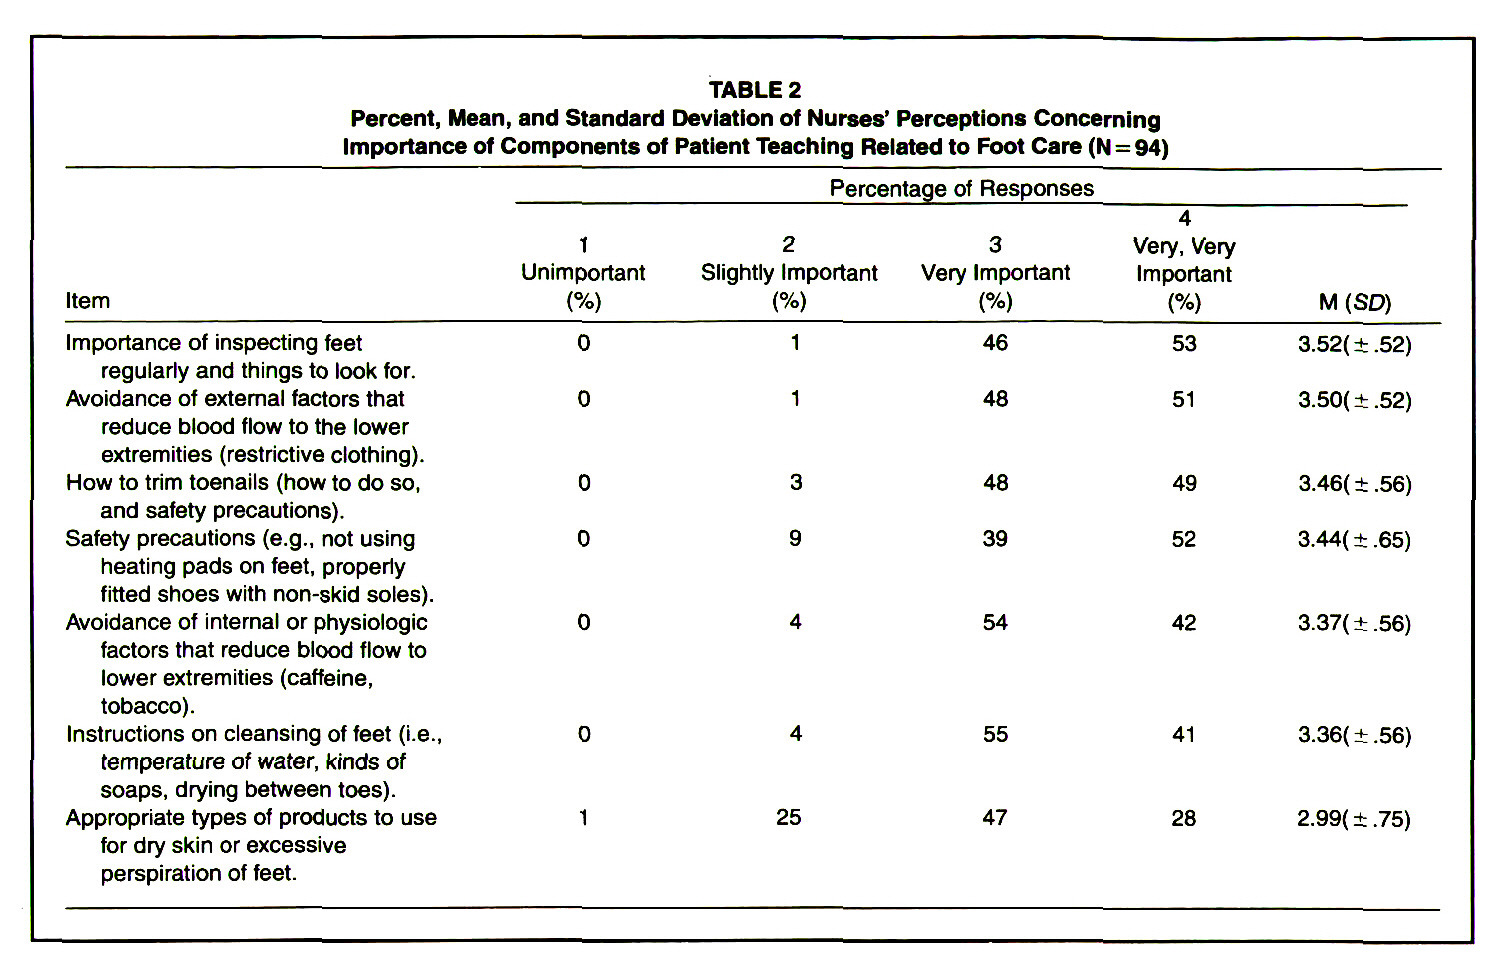 TABLE 2Percent, Mean, and Standard Deviation of Nurses' Perceptions Concerning Importance of Components of Patient Teaching Related to Foot Care (N = 94)